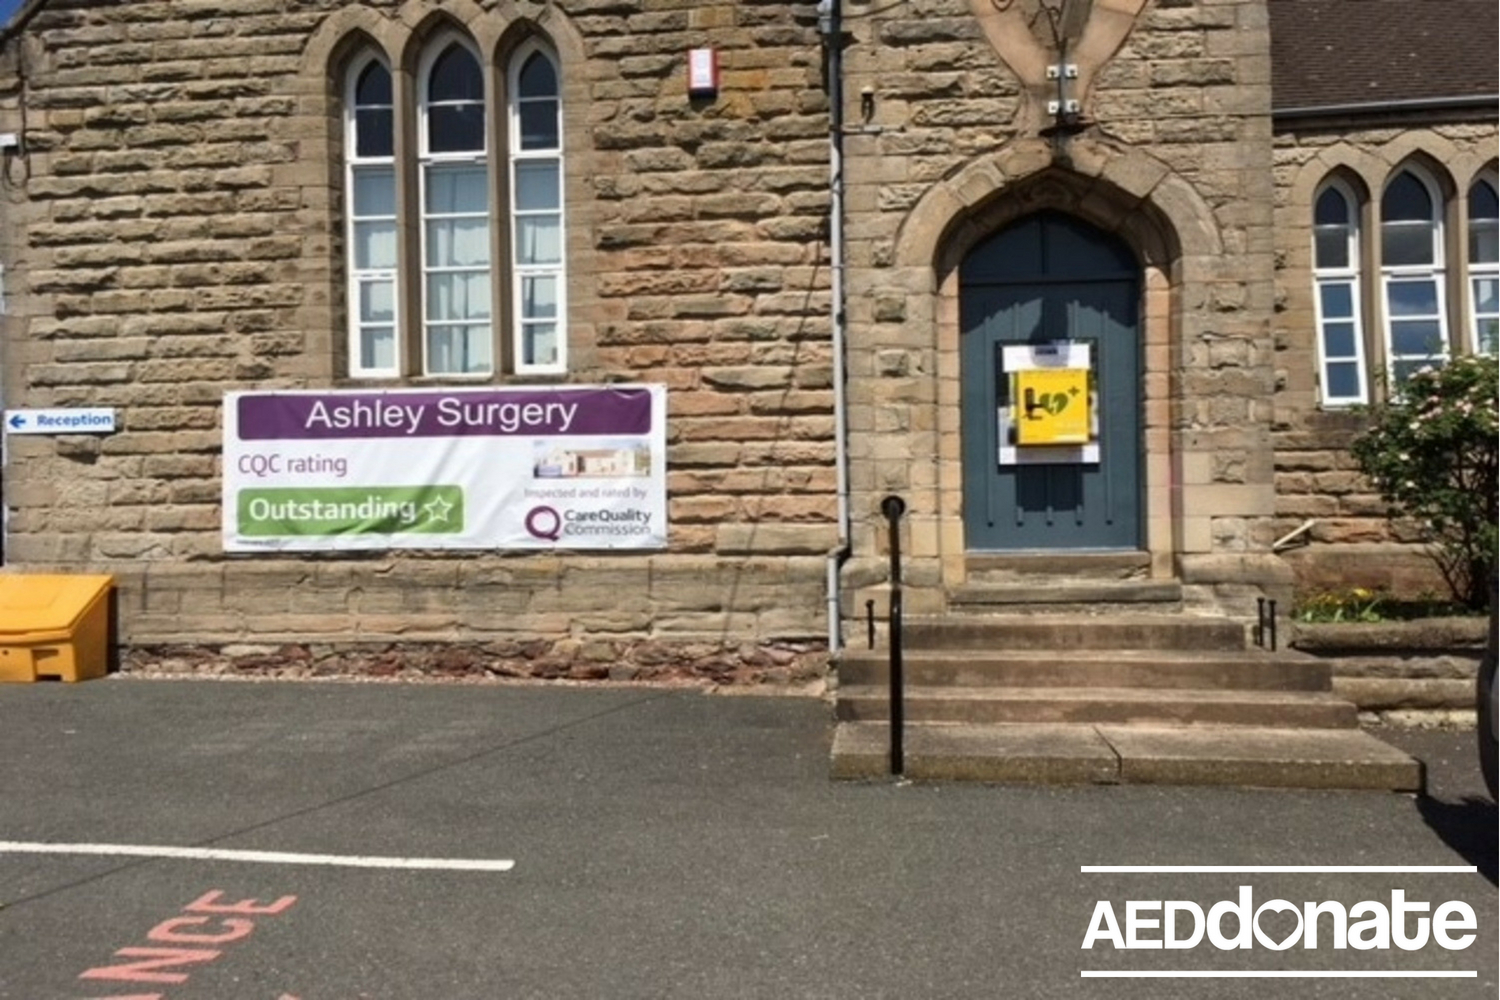 Defibrillator Installed at Ashley Surgery